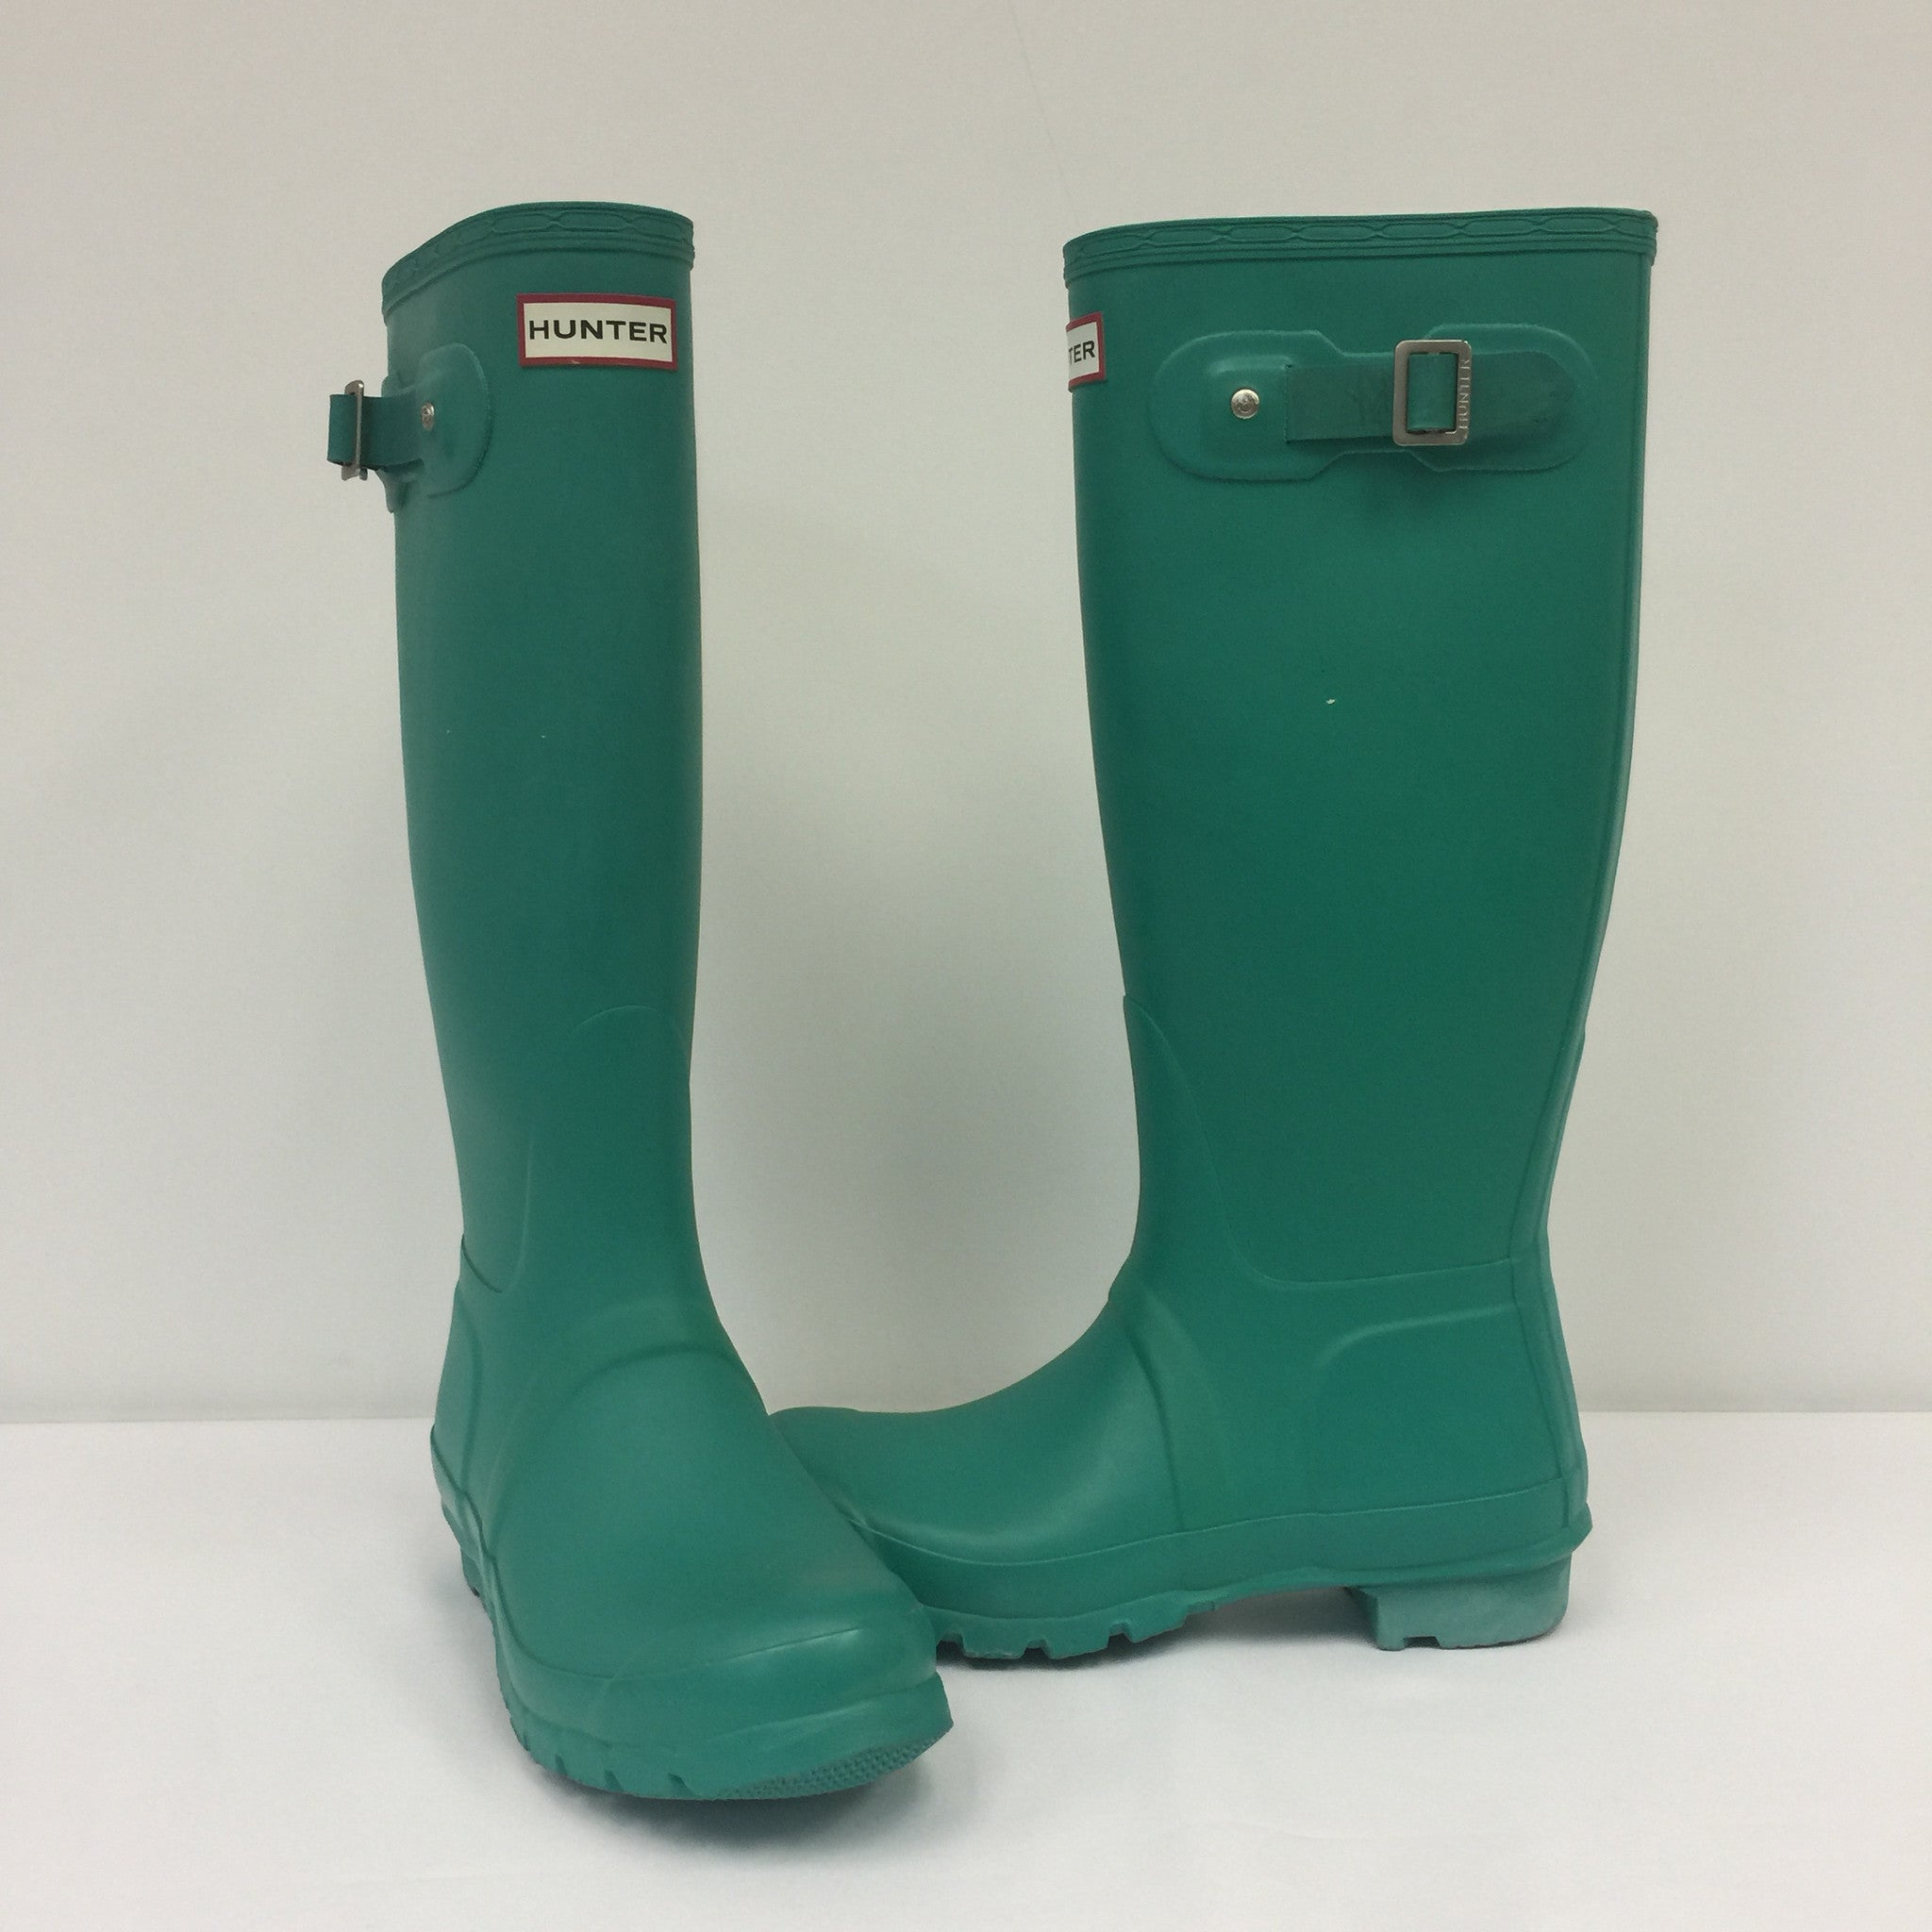 Hunter Boots (Green)